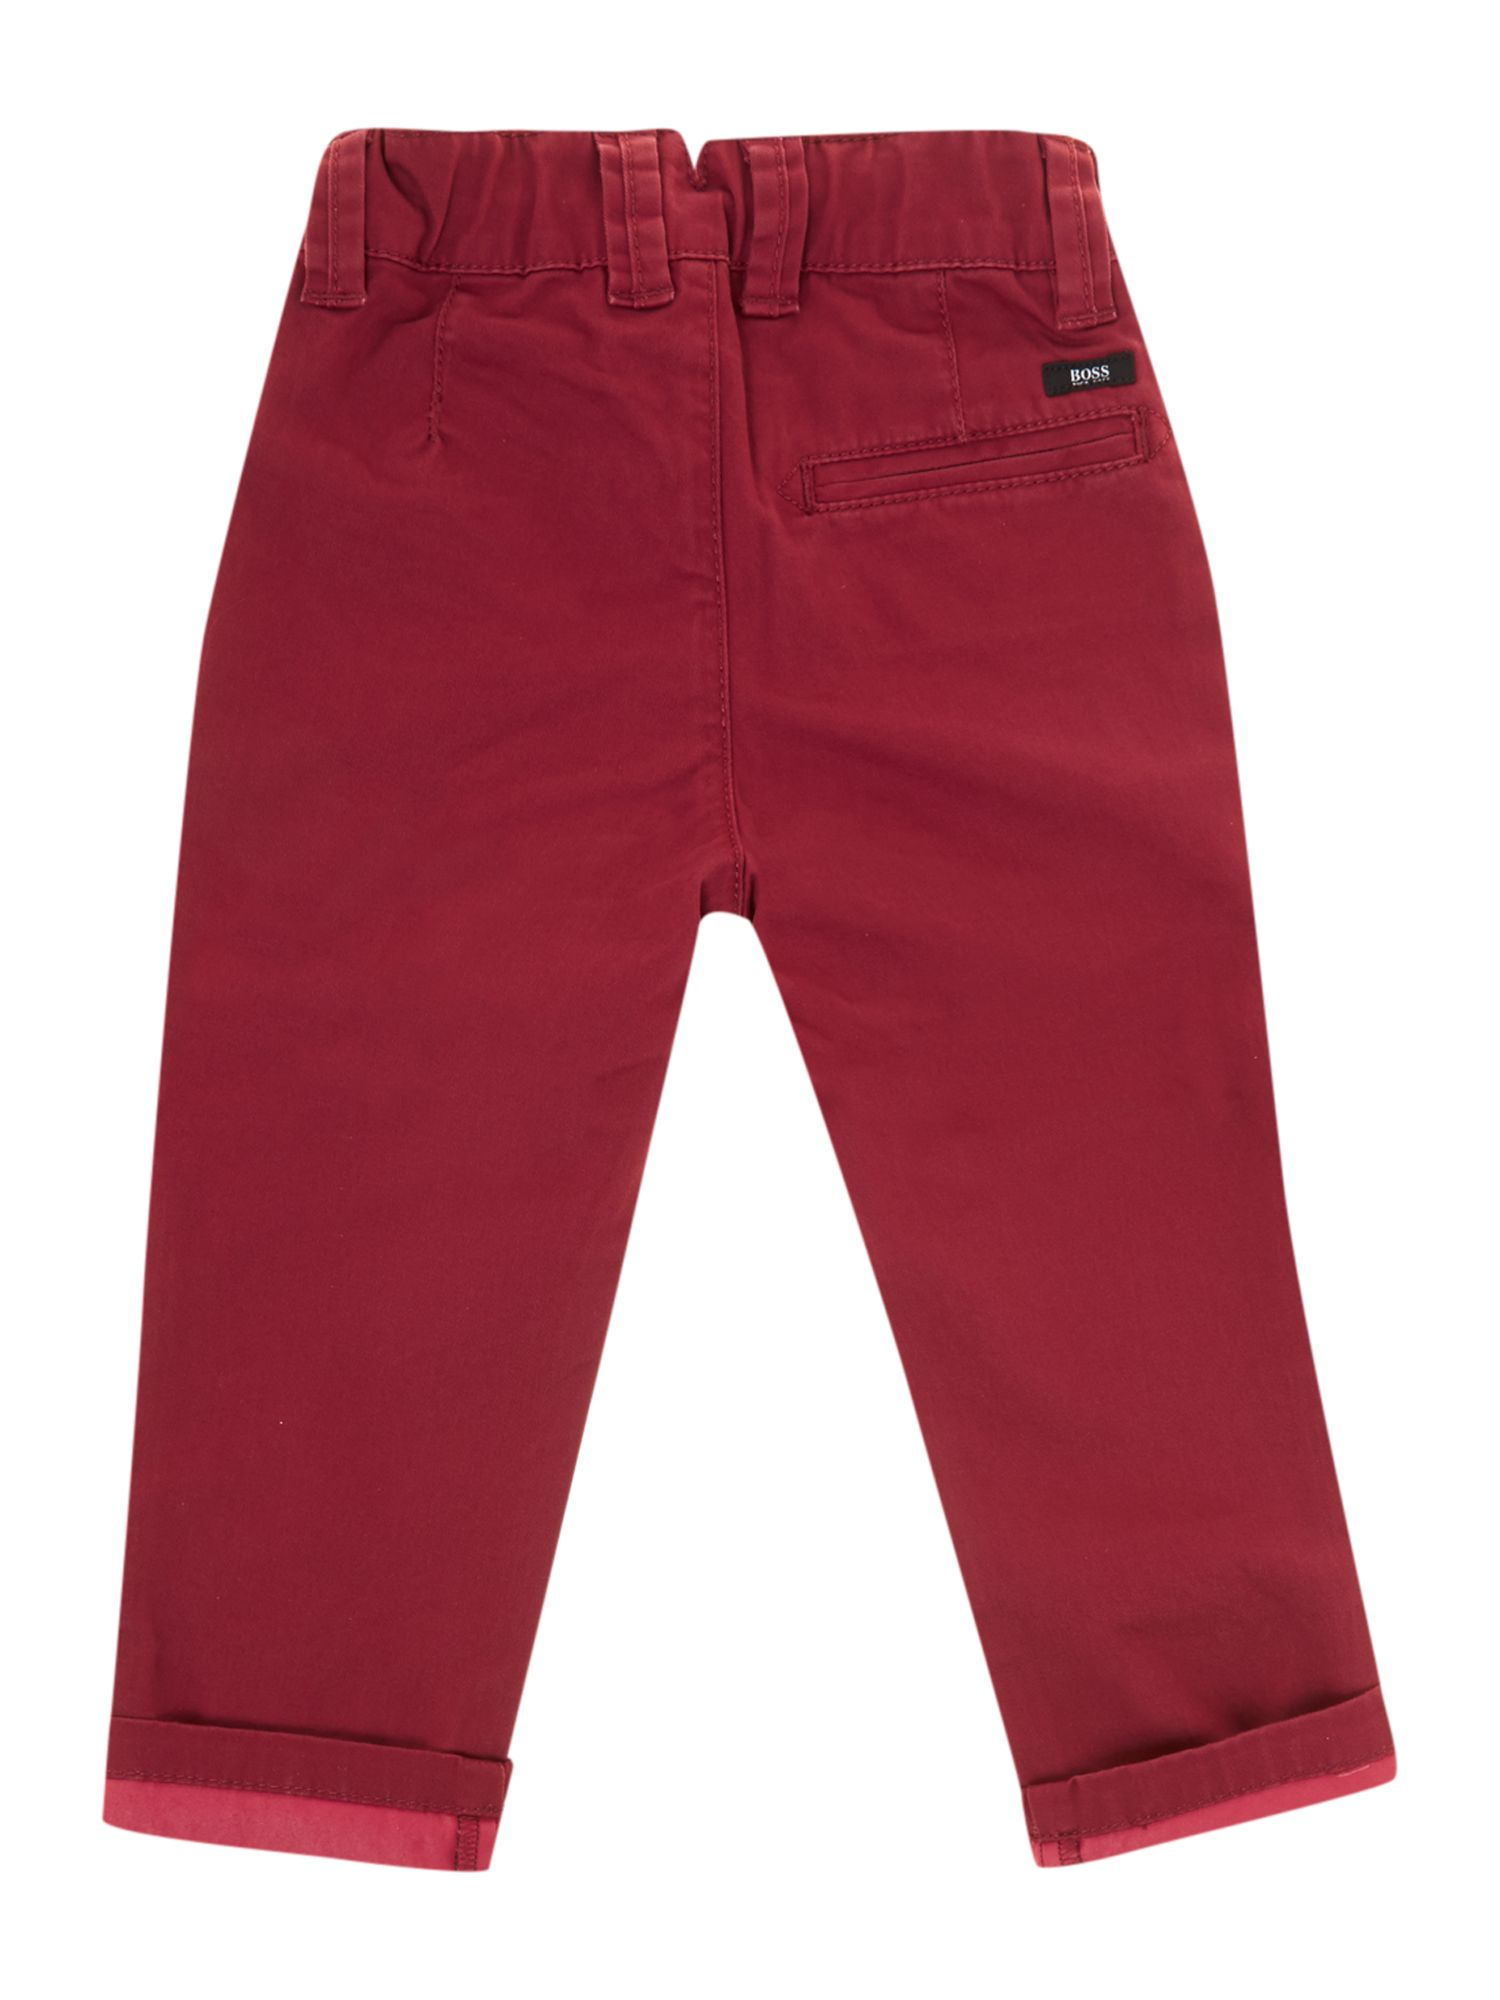 Boys twill chino trousers